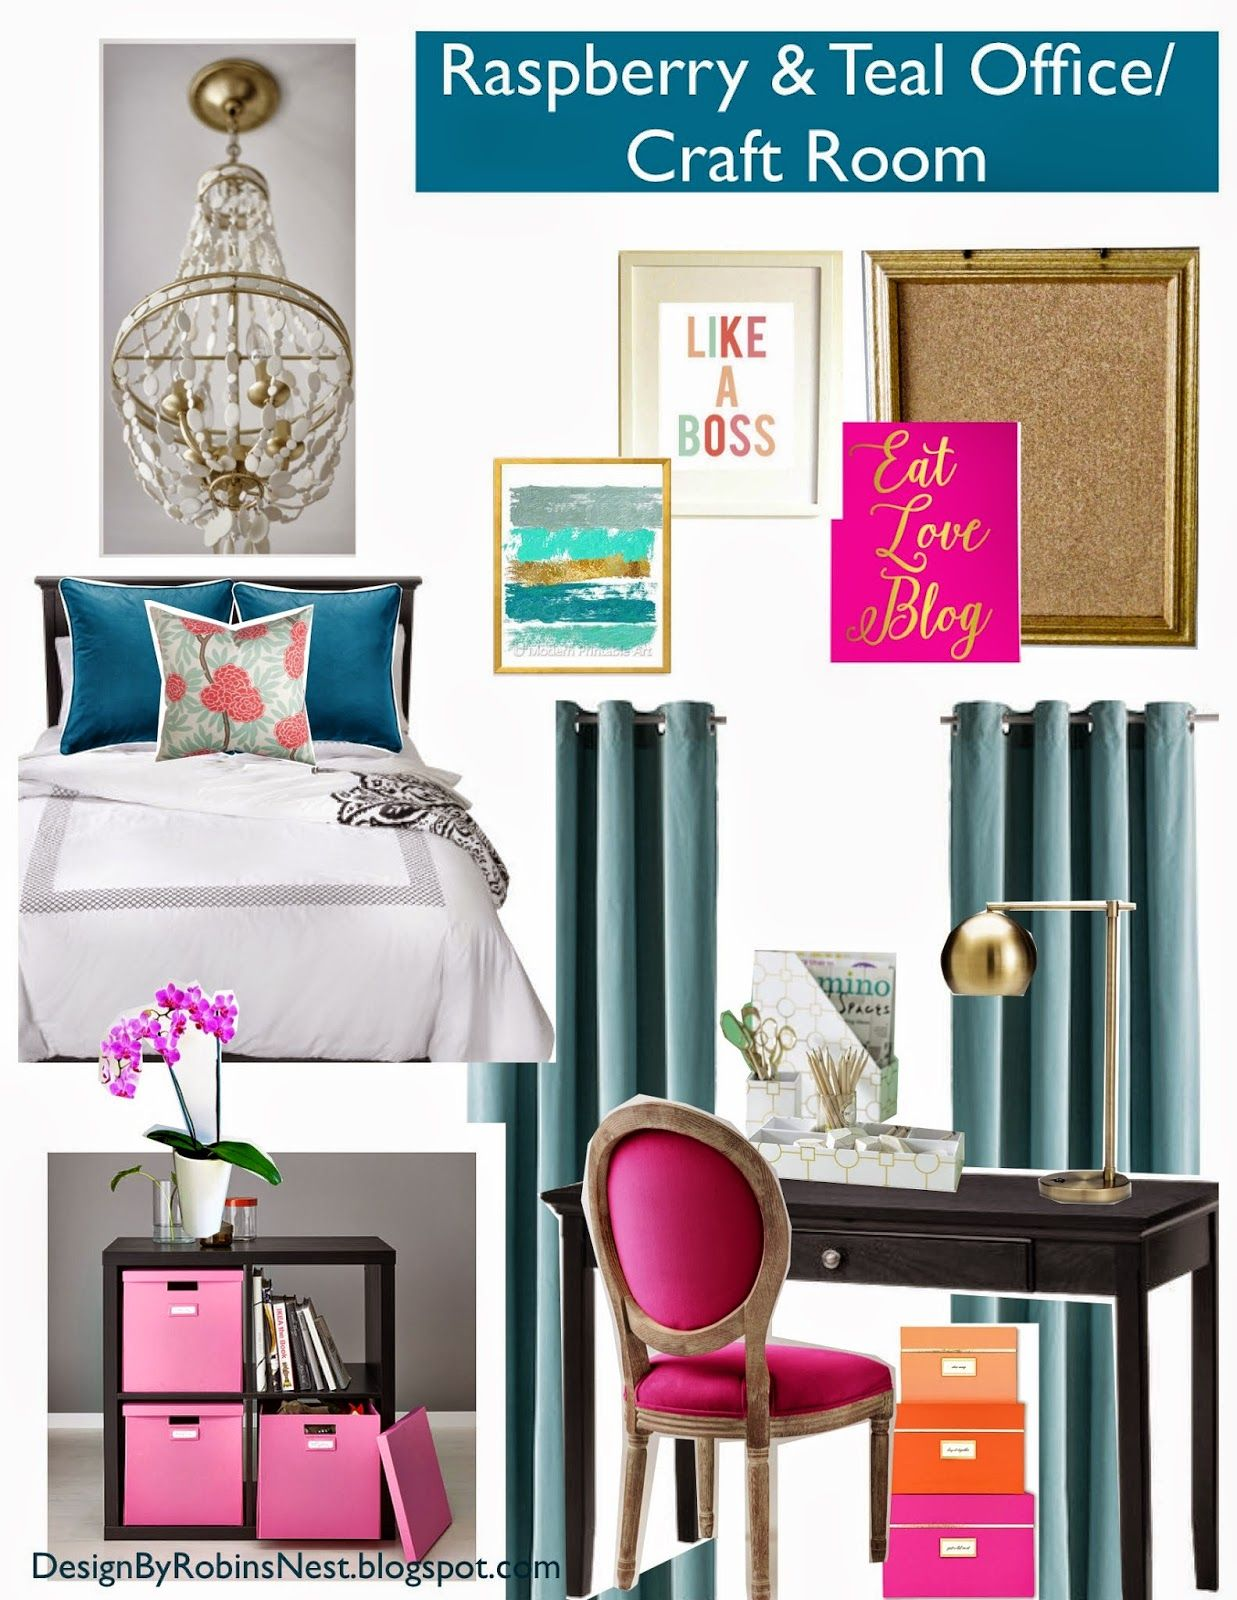 Home Office Craft Room And Guest Room Decorated In Teal Pink Fuschia Raspberry Turquoise And Gold Guest Room Design Guest Room Decor Guest Room Office